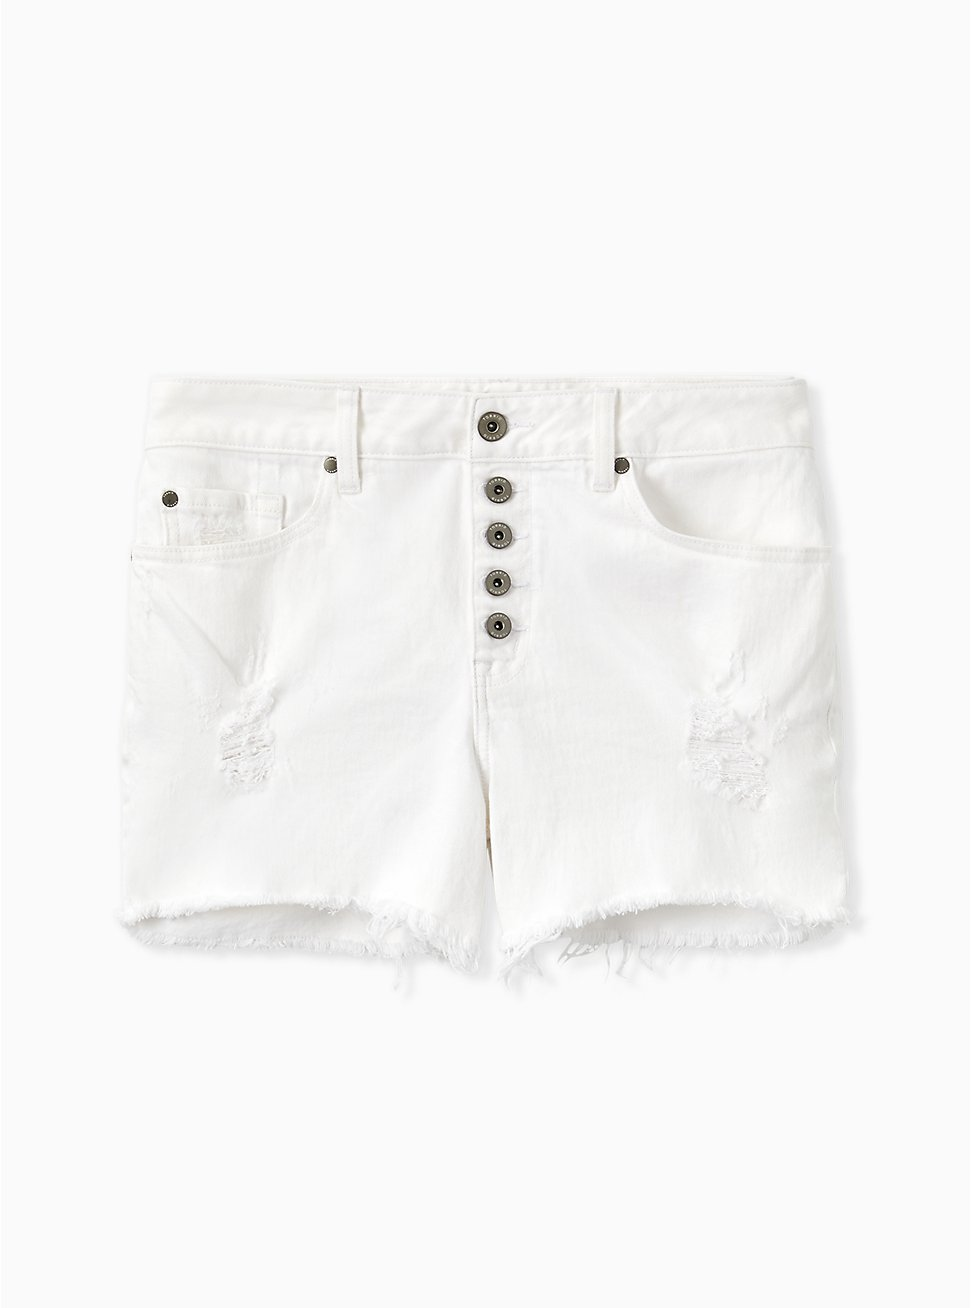 Plus Size High Rise Short Short - Vintage Stretch White, OPTIC WHITE, hi-res